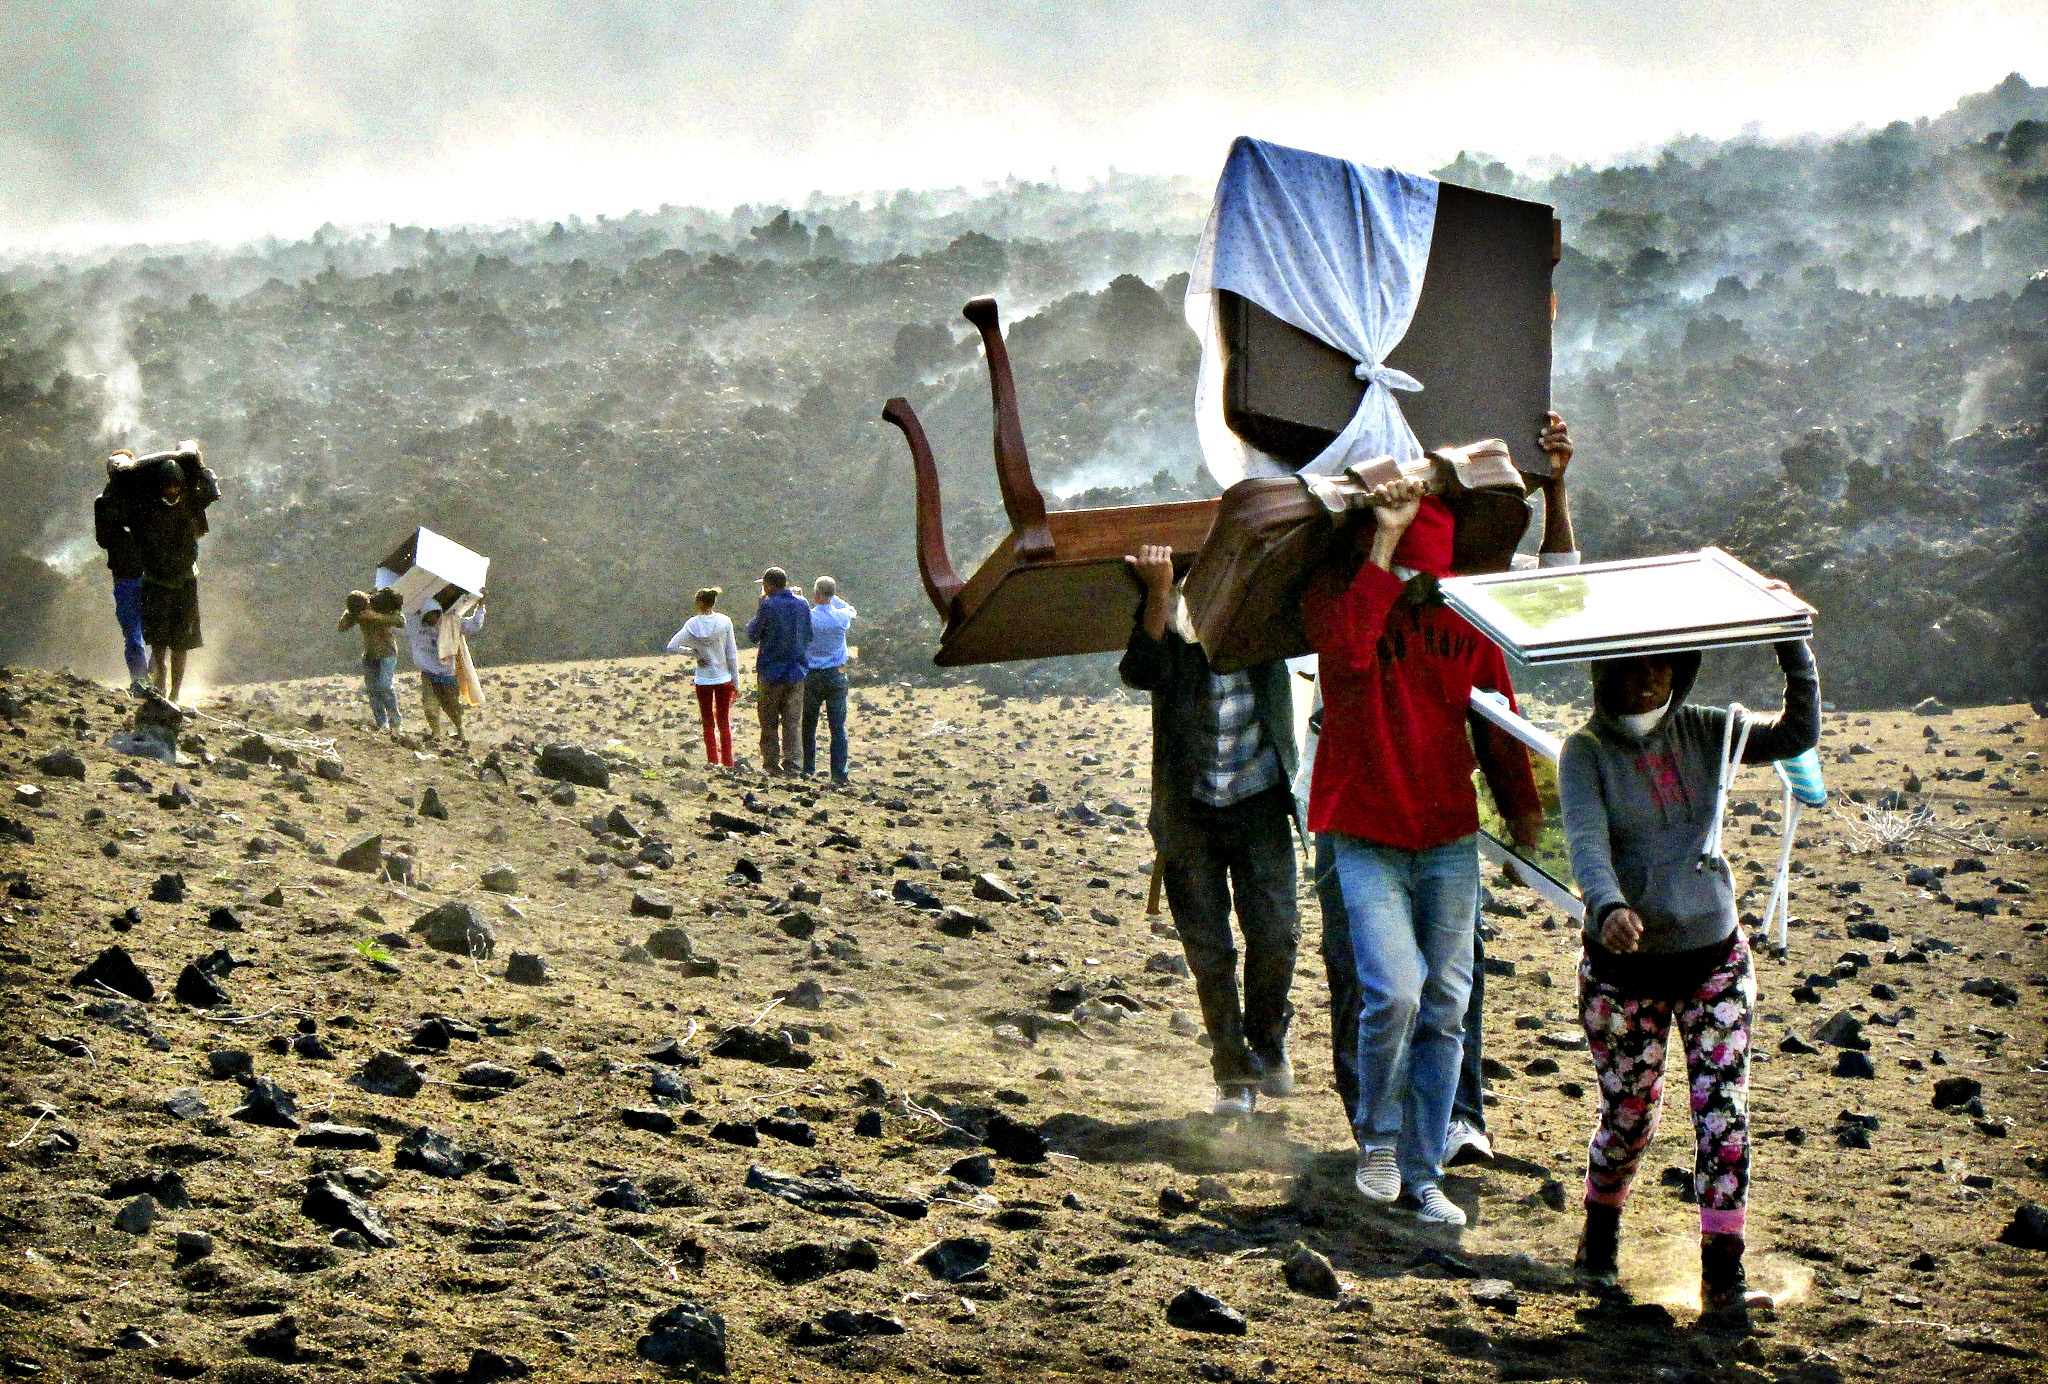 Inhabitants of Cha das Caldeiras carry their belongings as they leave the area due to the activity of the volcano which began erupting in the island of Fogo, Cape Verde, 25 November 2014. The volcano on 23 November 2014 was reported to have erupted at dawn and made it necessary to activate evacuation plans at various points of the island, media reports state. There were no immediate reports yet on any casualties caused by the volcanic eruption.